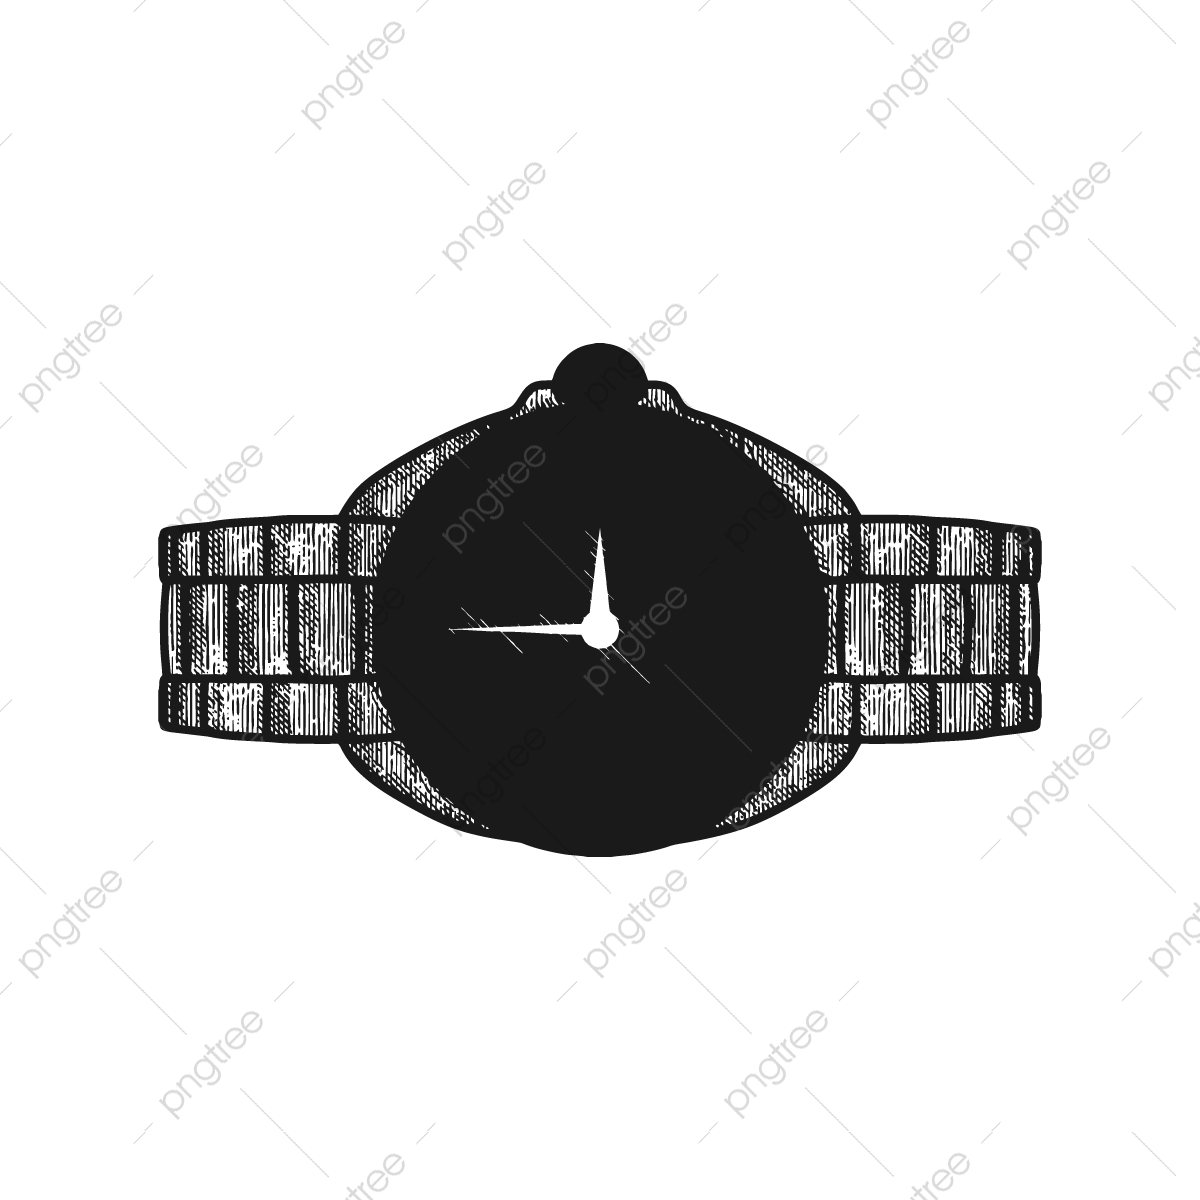 Watch Logo Design Inspiration Logo Icons Watch Icons Inspiration Icons Png And Vector With Transparent Background For Free Download